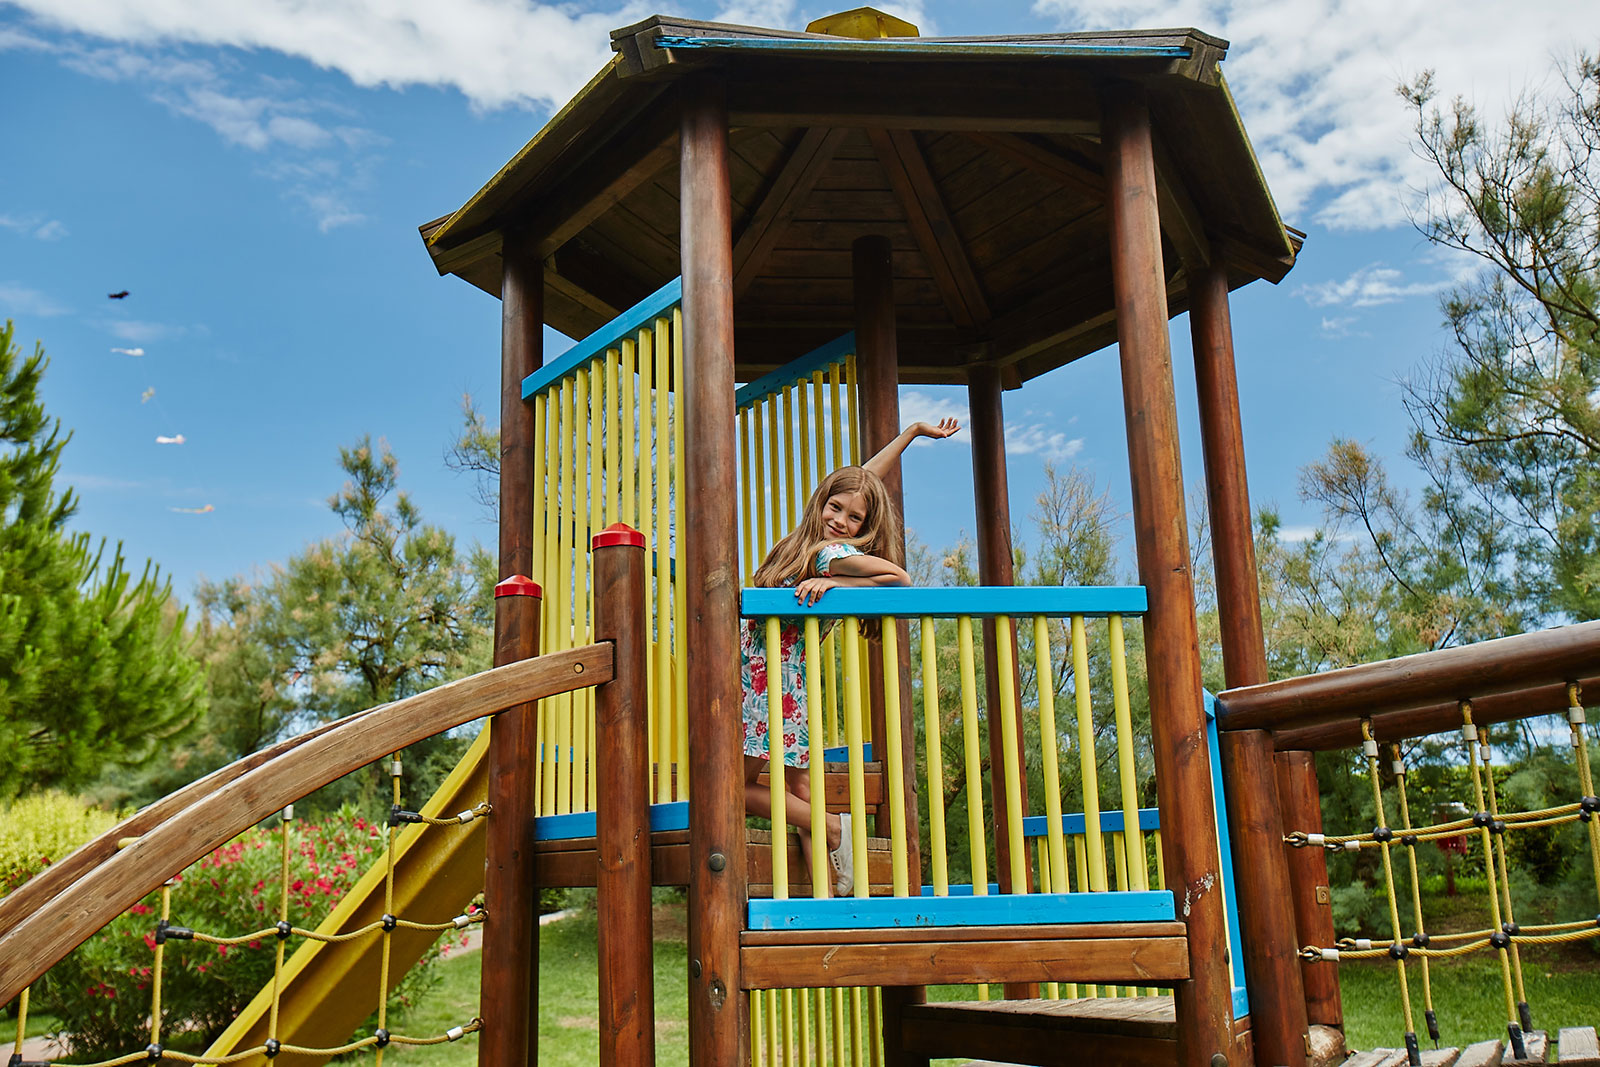 Children's-Playground-Camping-Village-Dei-Fiori